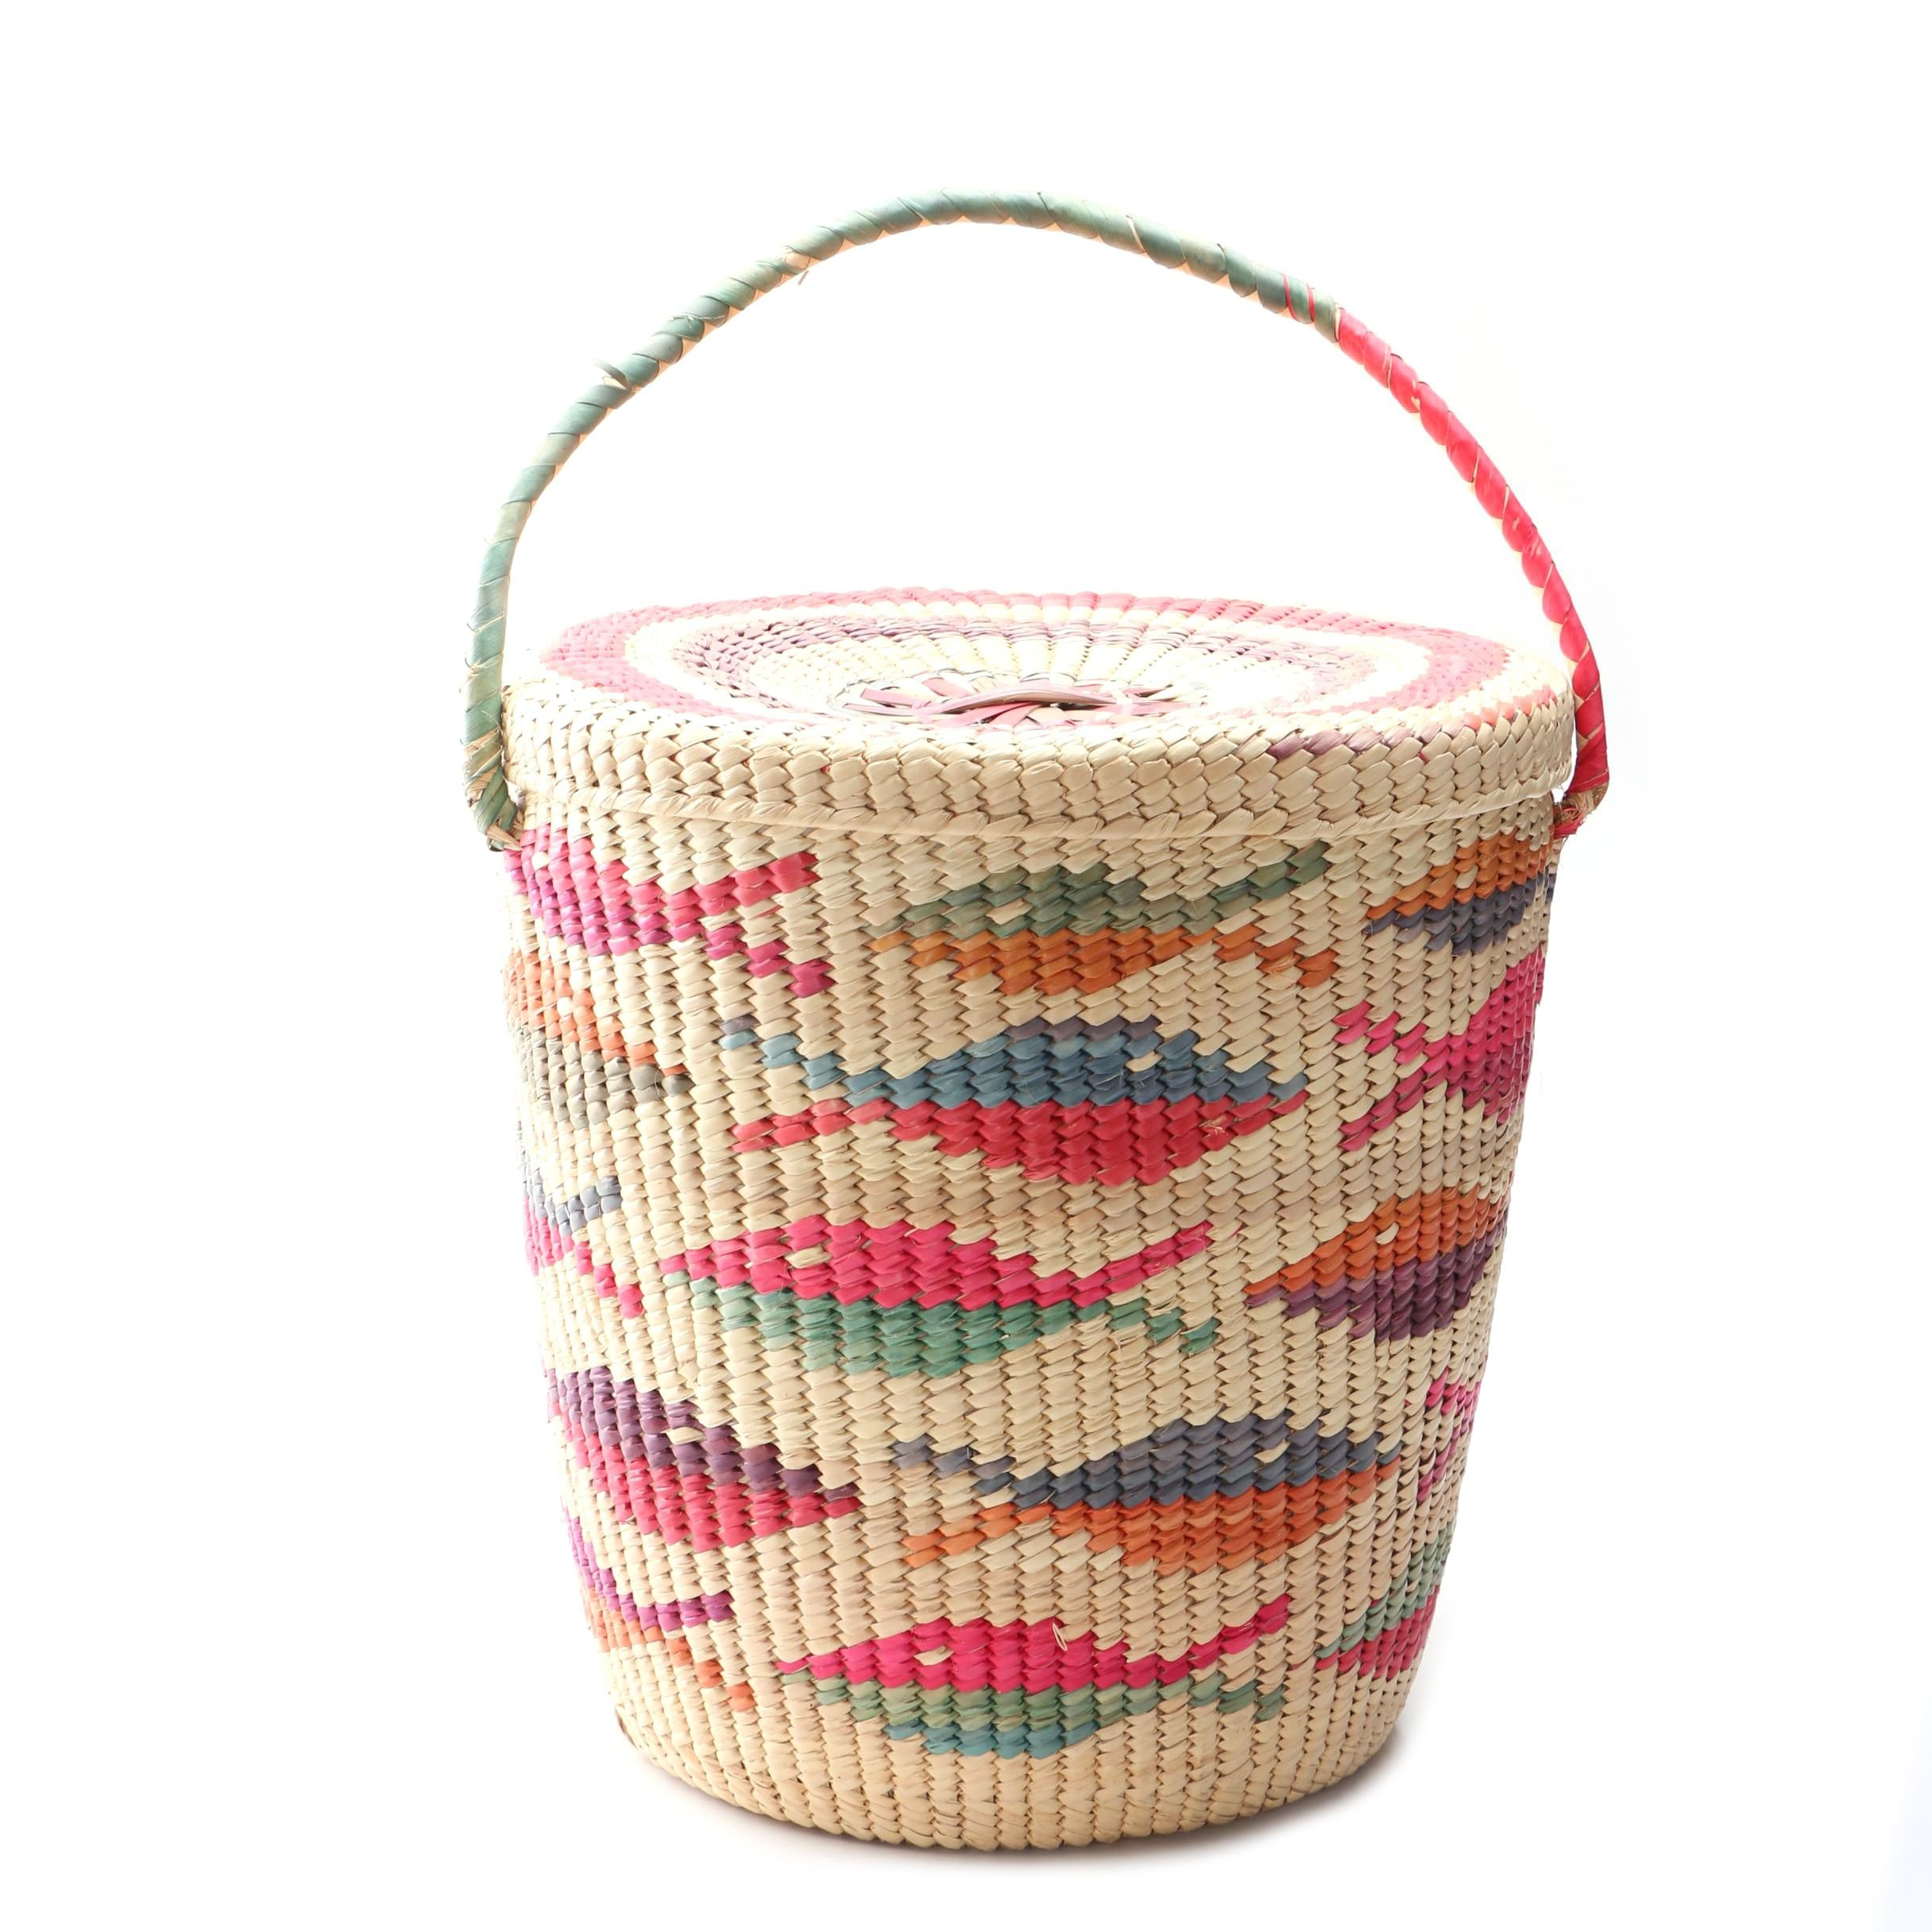 Large Woven Covered and Handled Basket with Fish Pattern